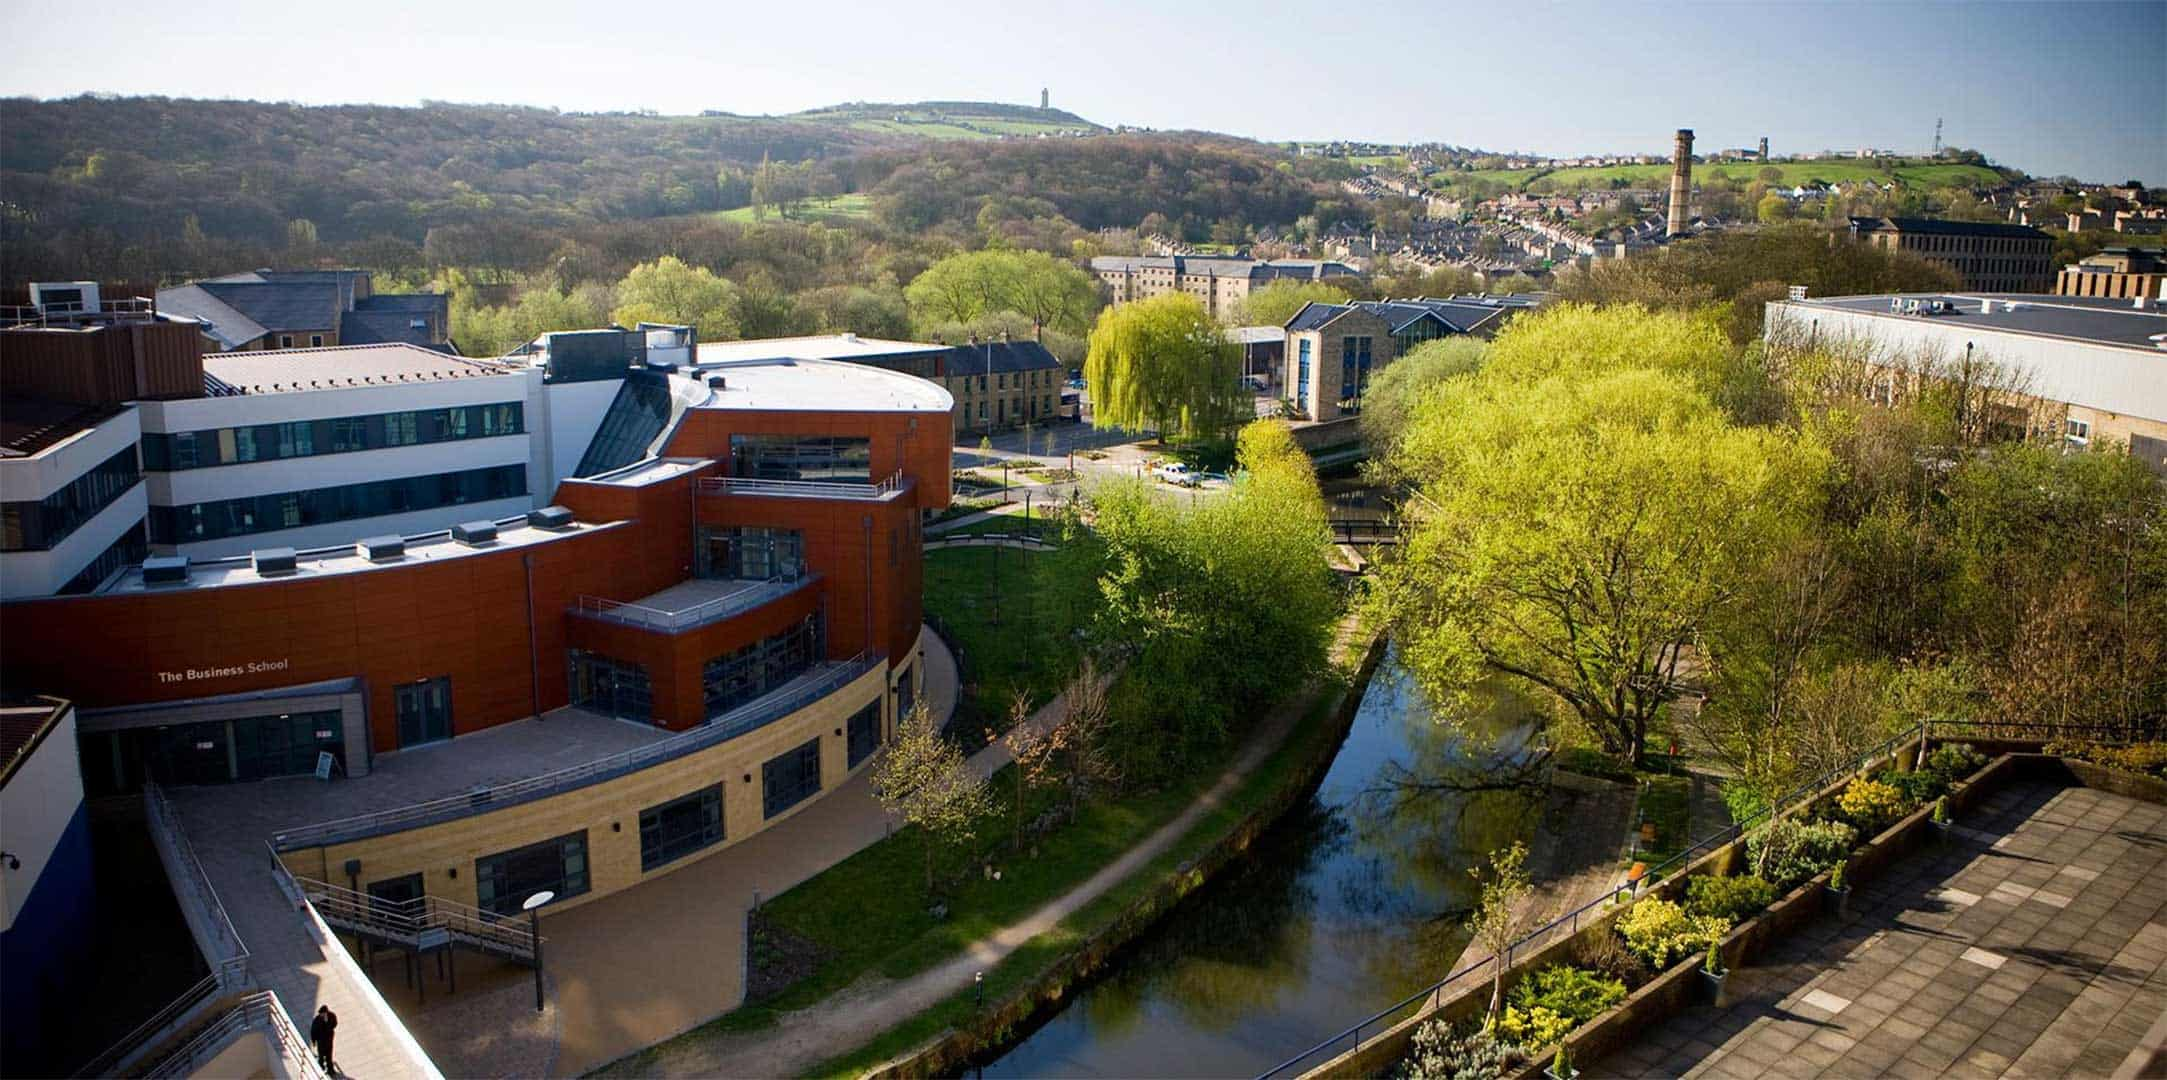 A picture of the Huddersfield business school as an aerial shot that will be used for our business school sites.